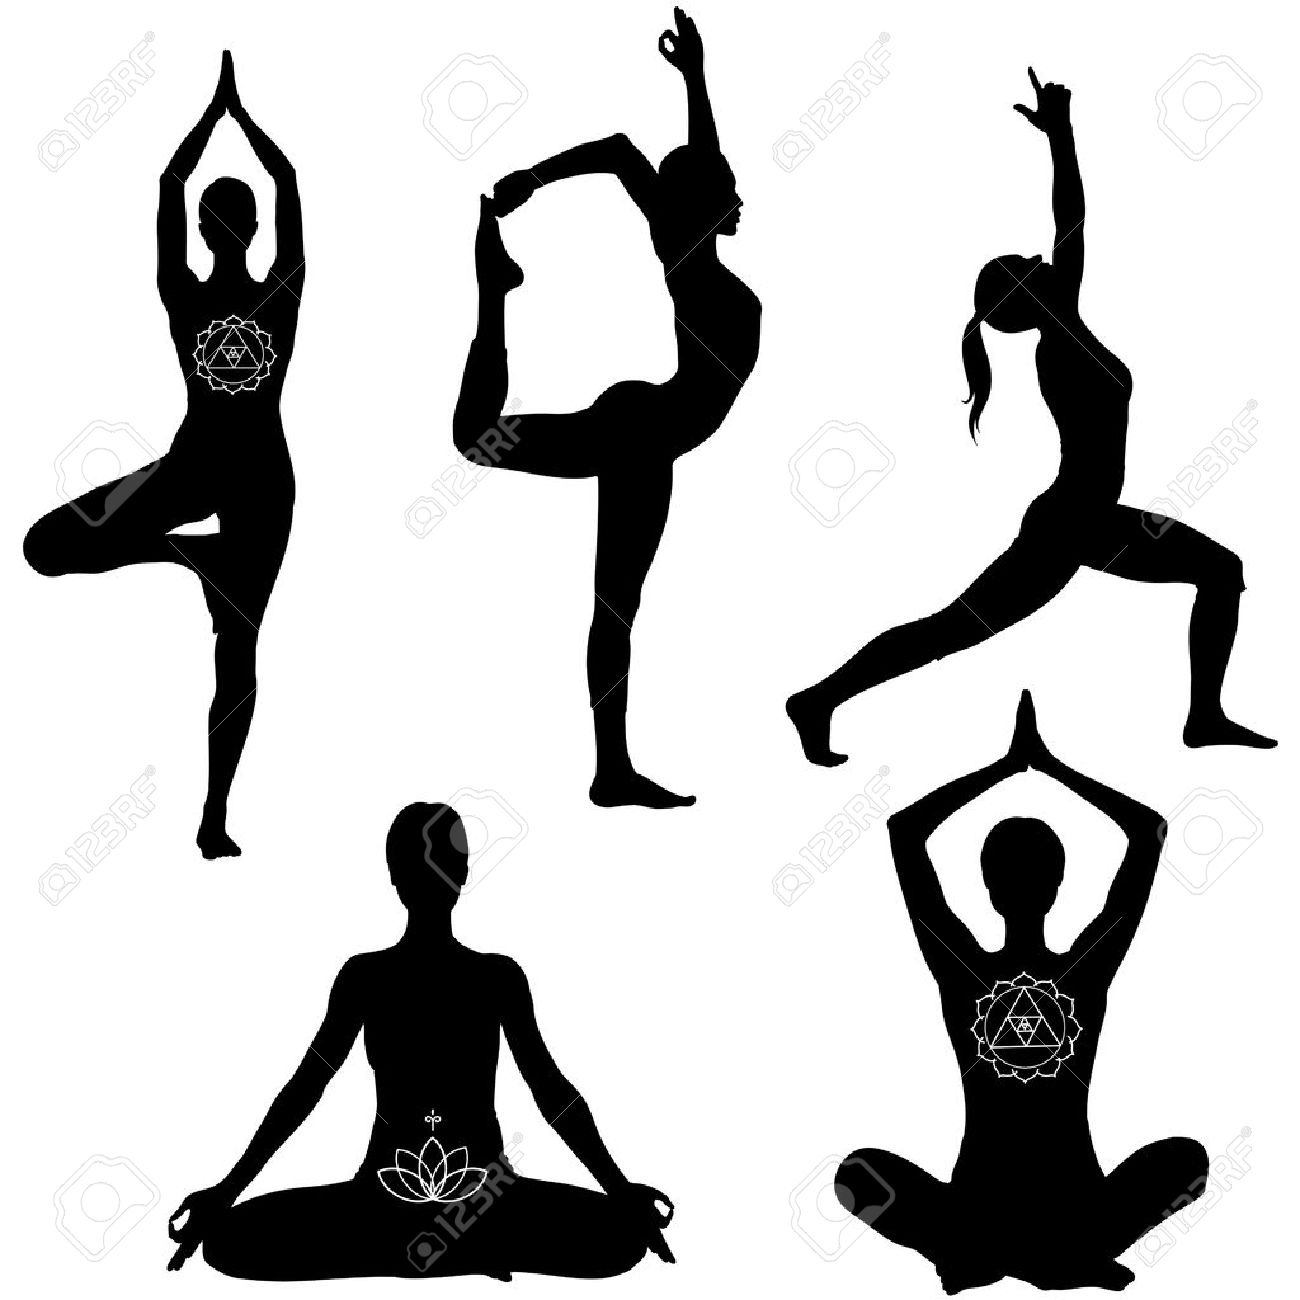 Yoga poses: lotus, lord of the dance, warrior I and tree pose